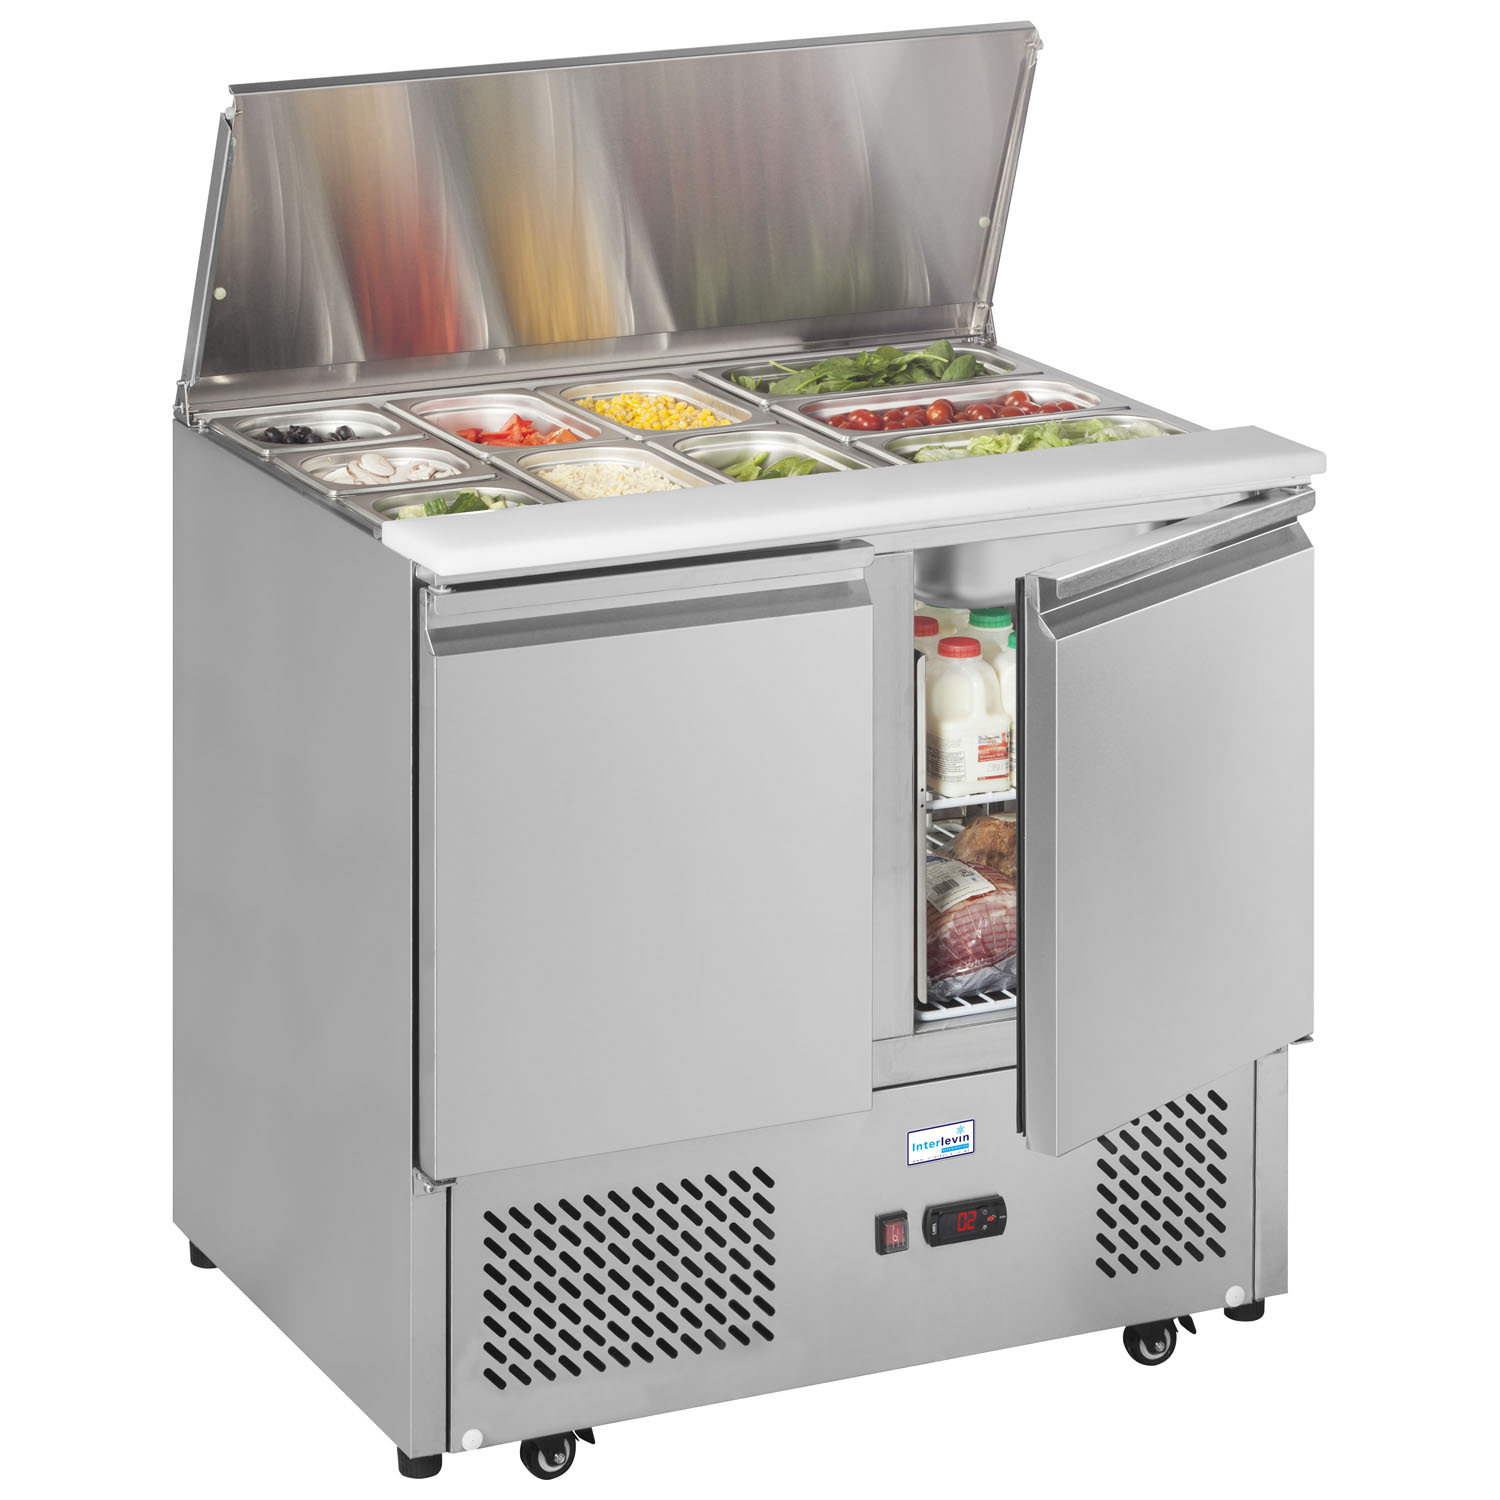 An image of Interlevin ESA900 Refrigerated Saladette Counter